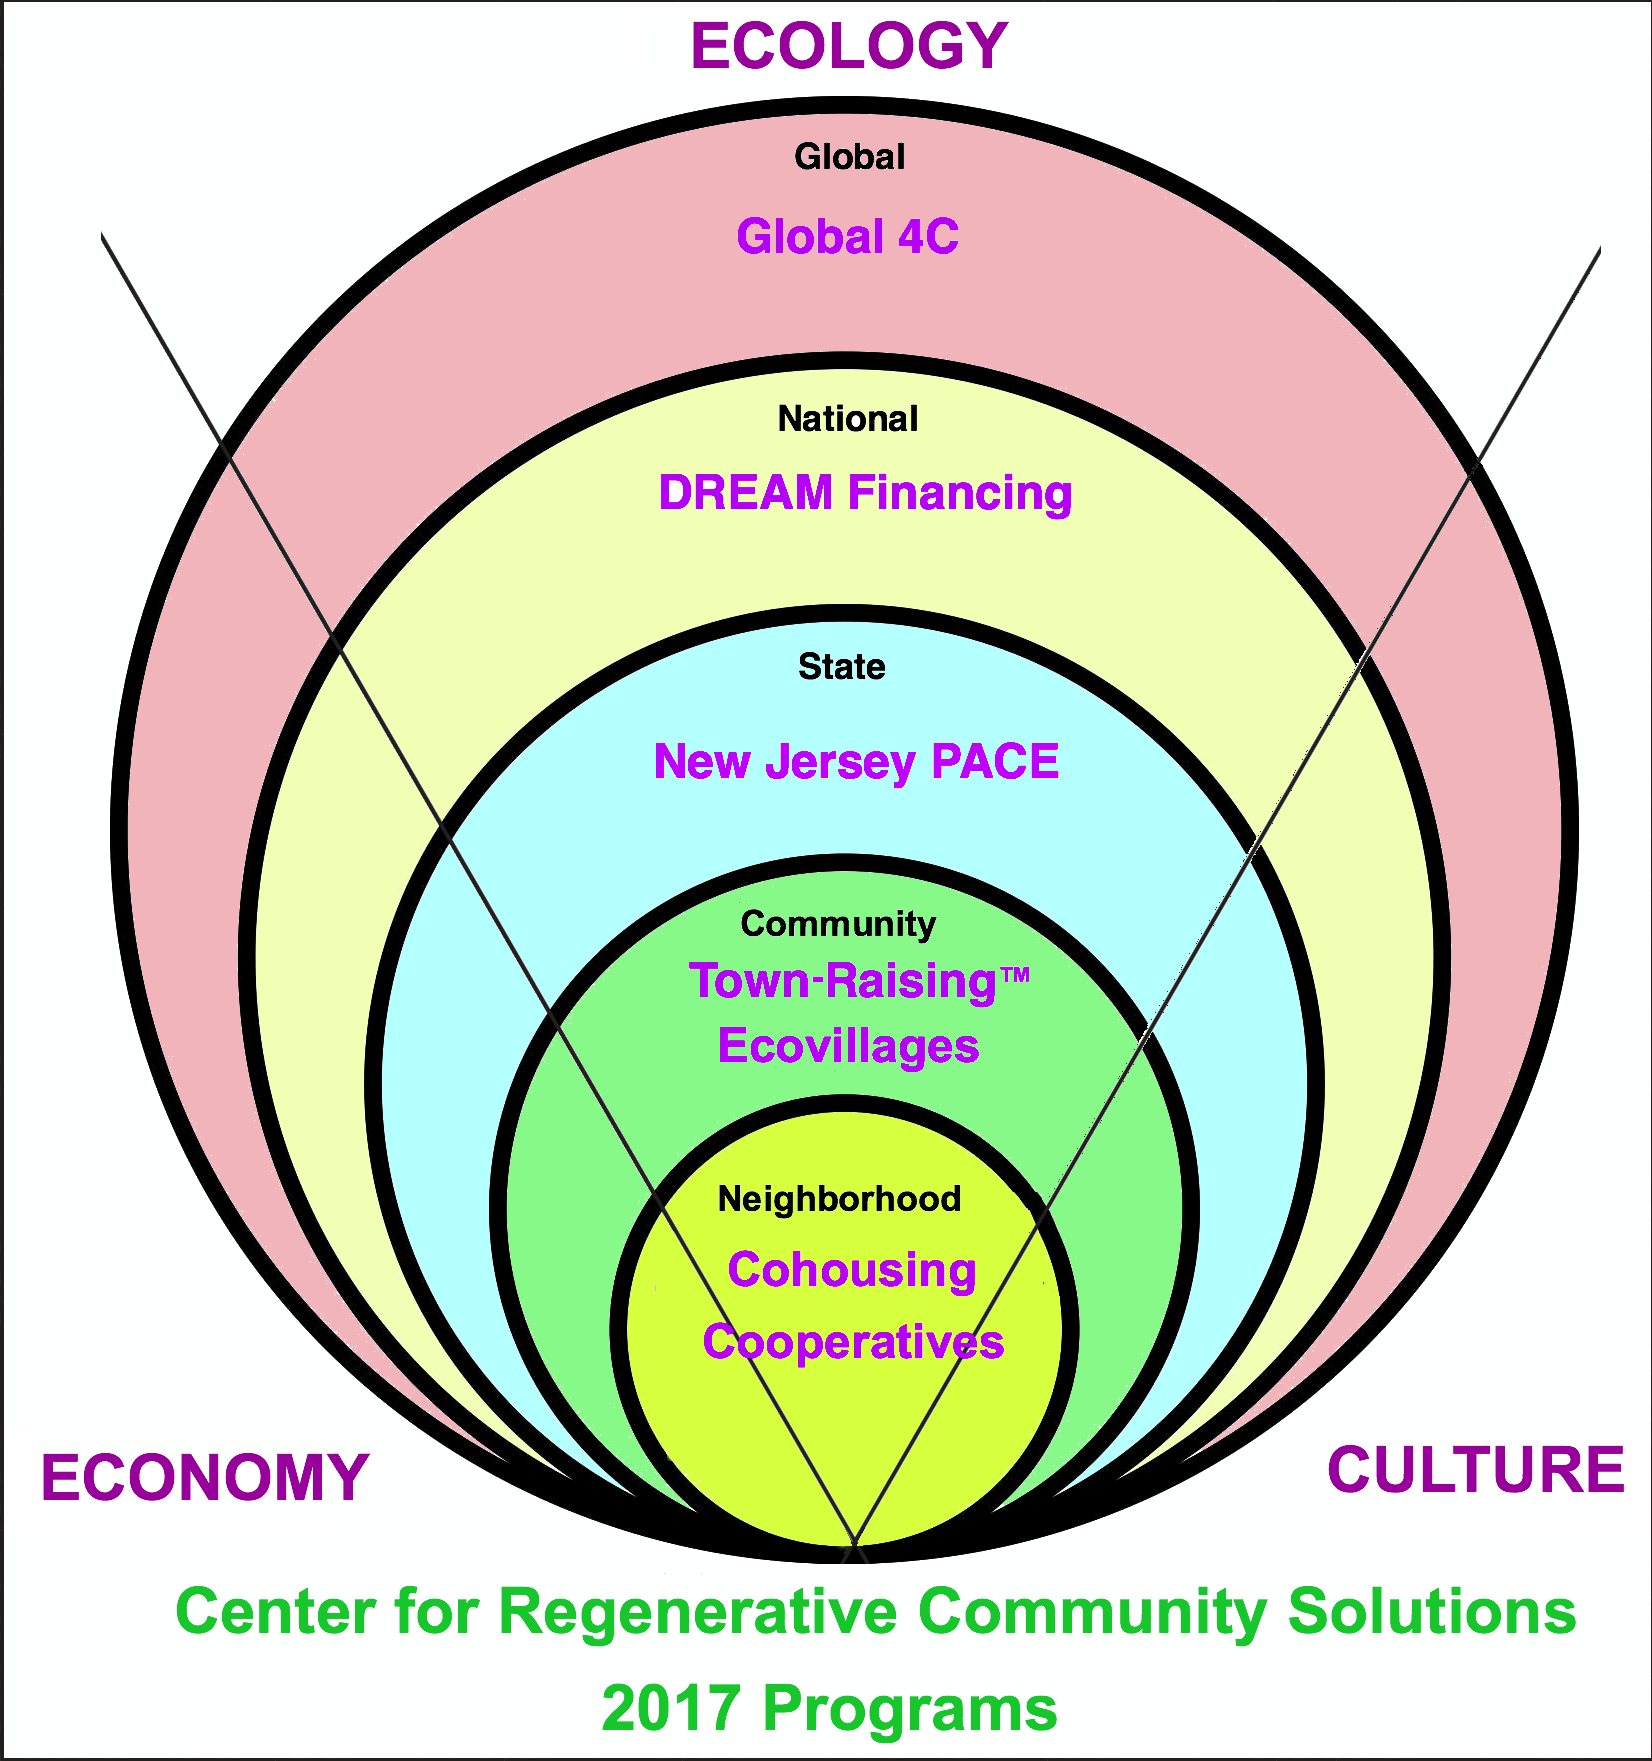 New directions for 2017 center for regenerative community solutions heres an overview diagram showing our current programs from local to global at the planetary level we are supporting global4c an international monetary ccuart Images